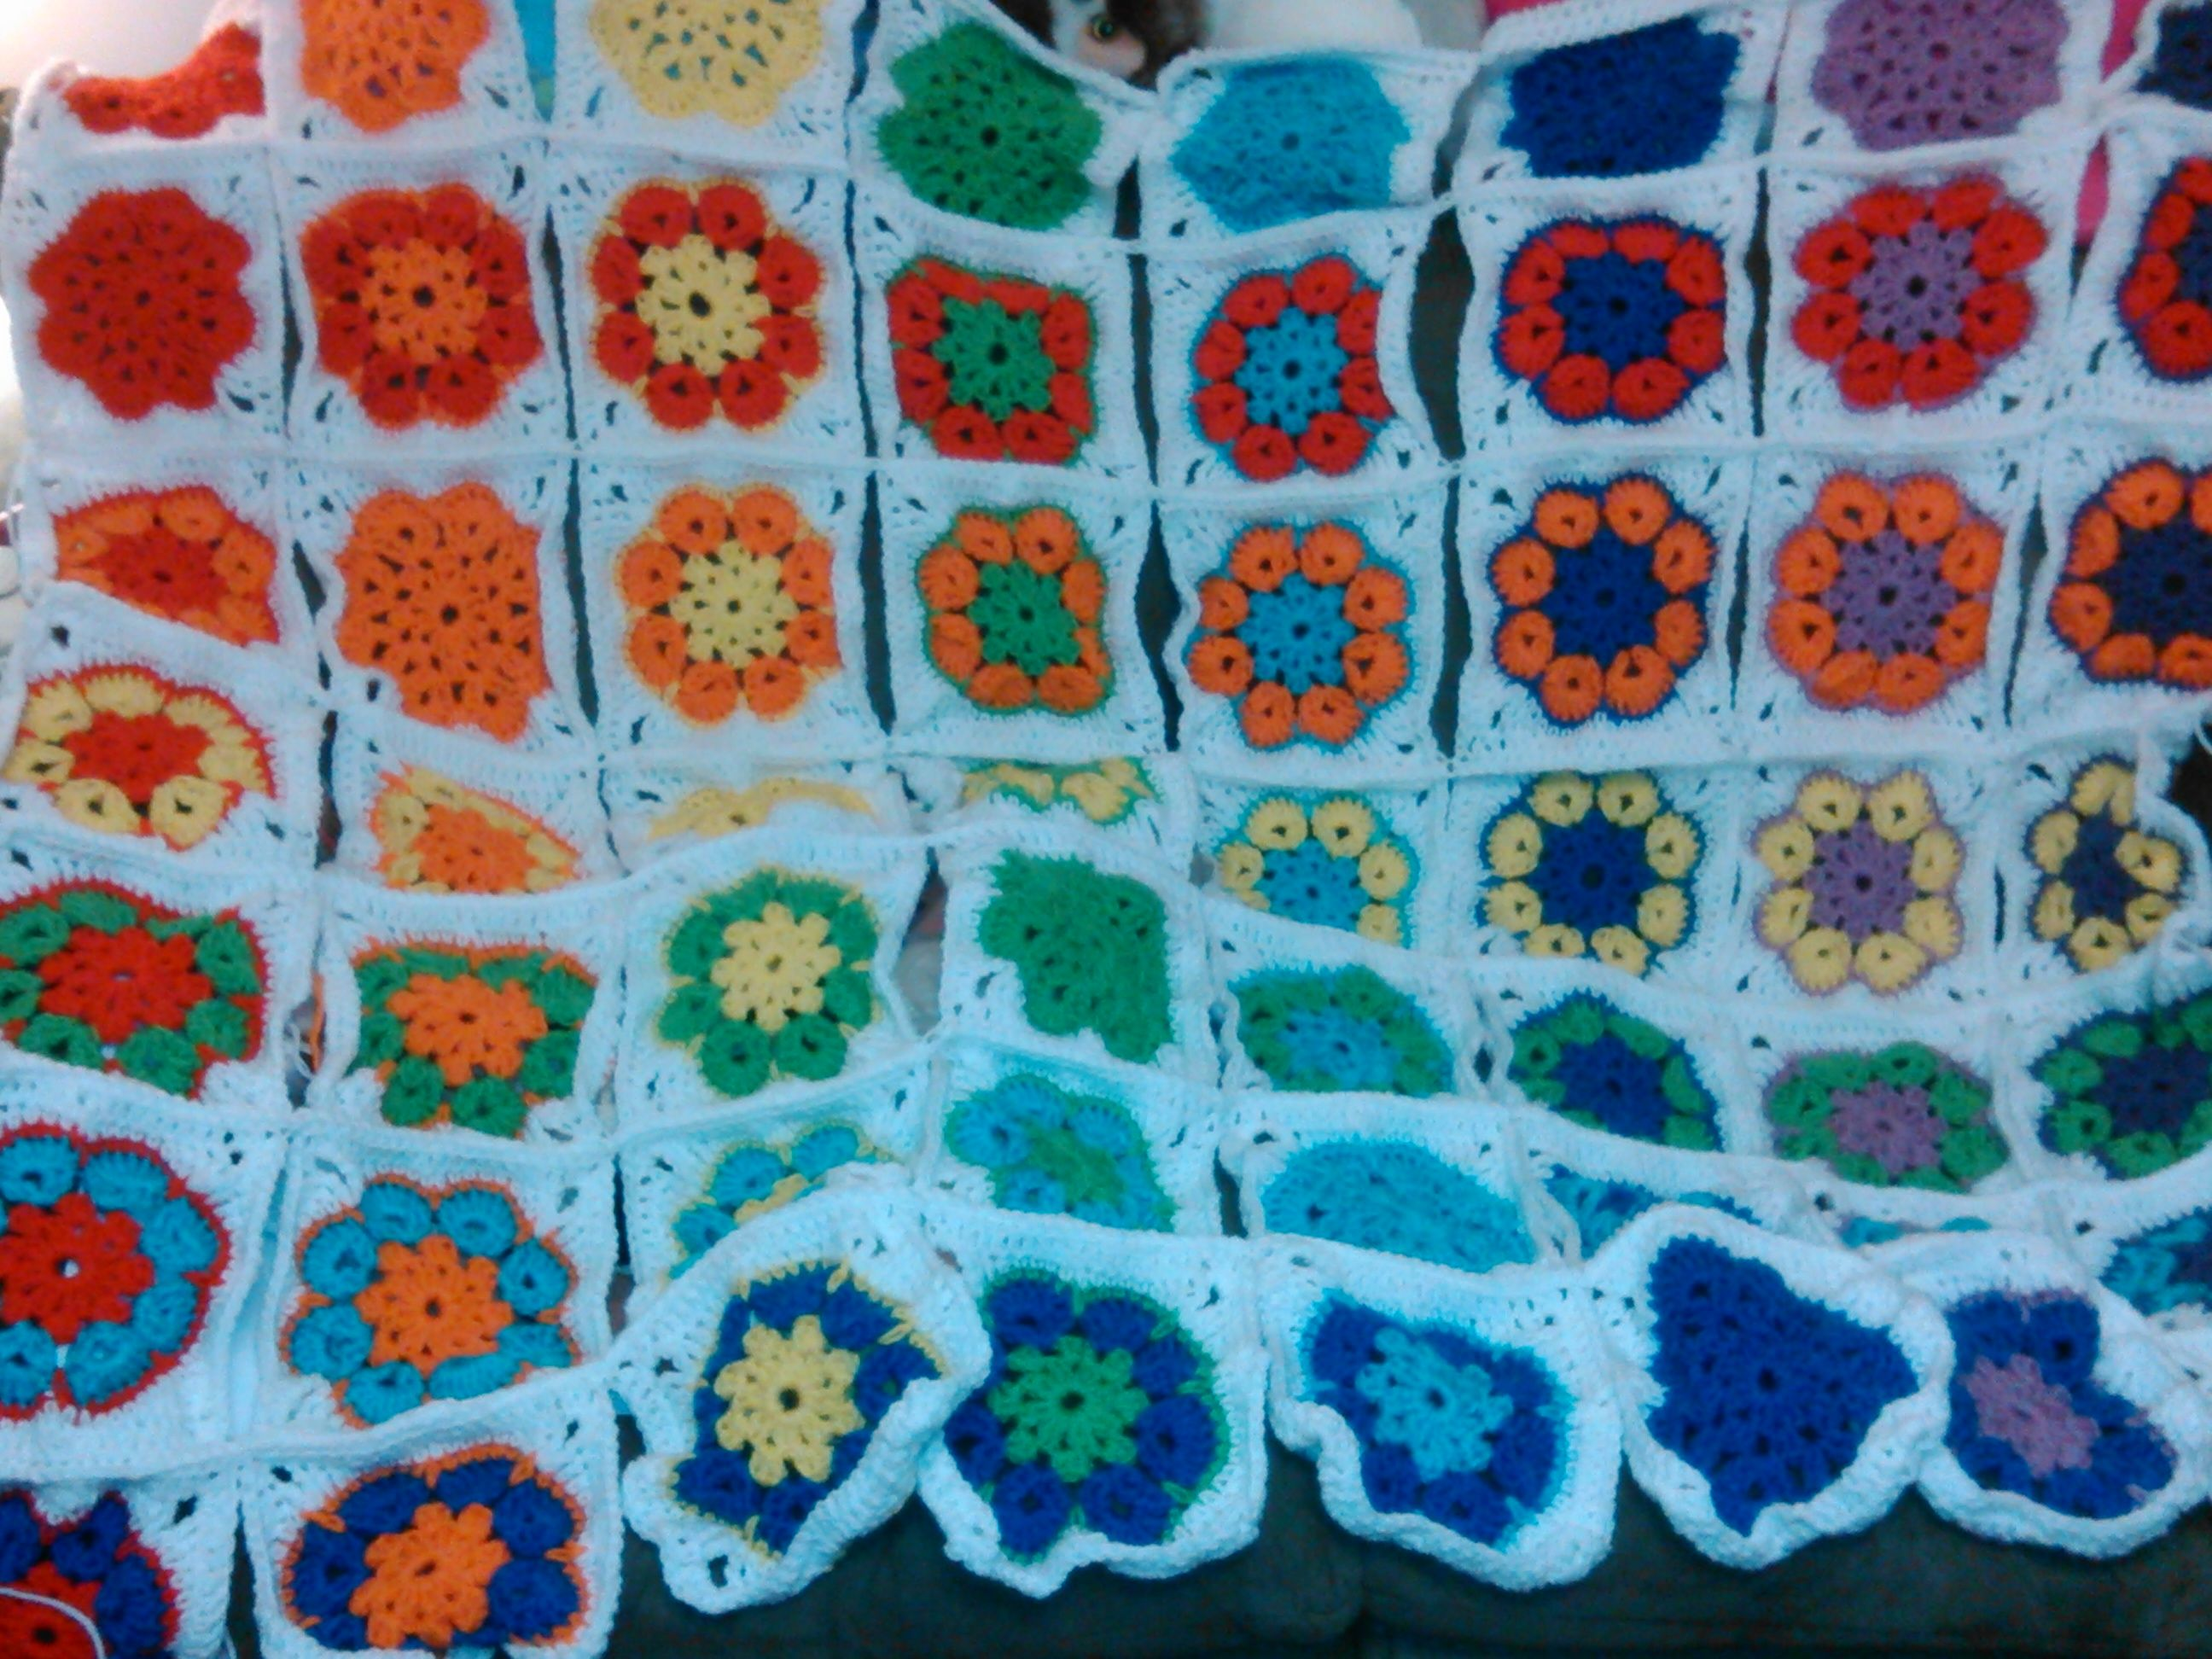 Work in progress rainbow granny square blanket will be about